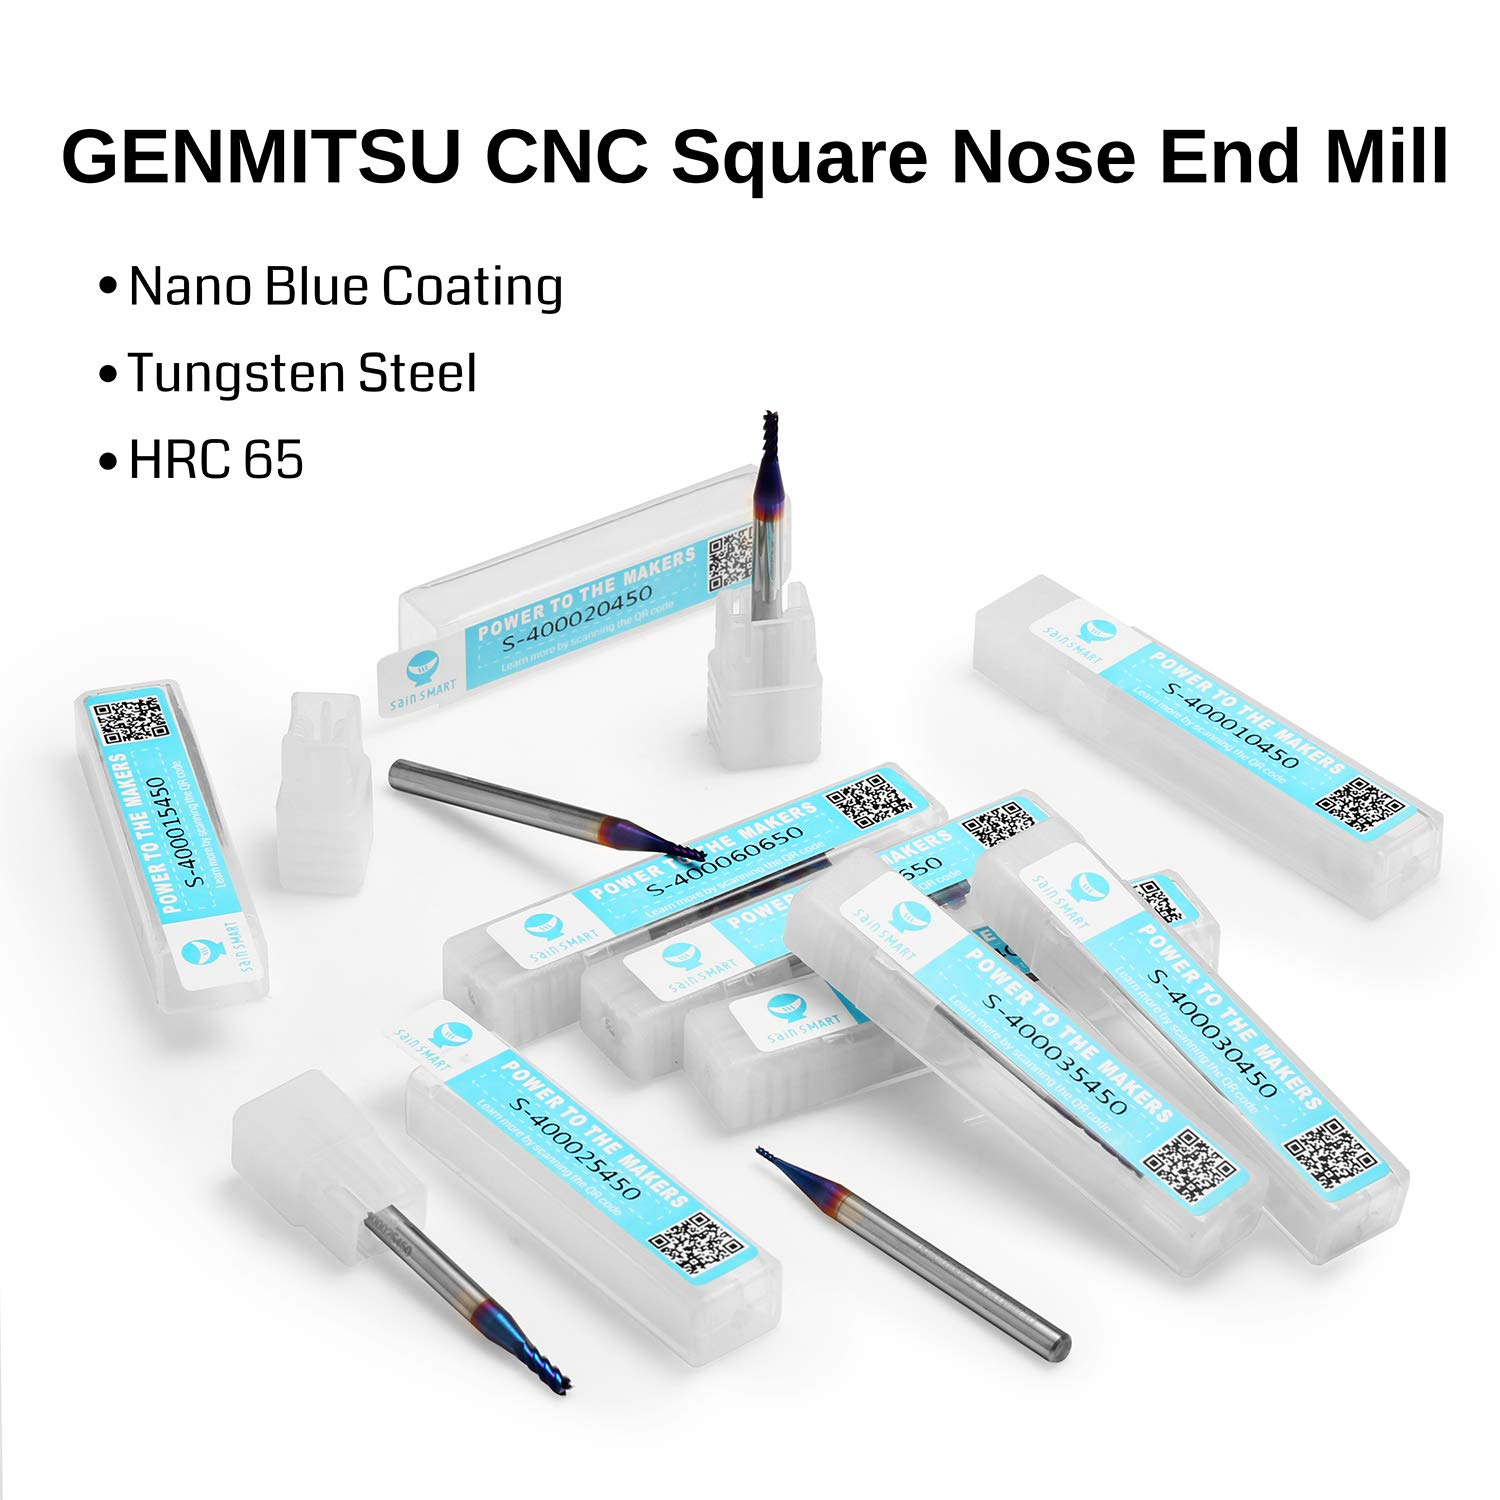 Aluminum 4mm Shank Soft Metal 1.0mm Cut Dia Plastic Acrylic ideal for Wood Solid Carbide Nano Blue Coat Tungsten Steel Genmitsu CNC Router Bits Square End Mill 4 Flutes Stainless Steel